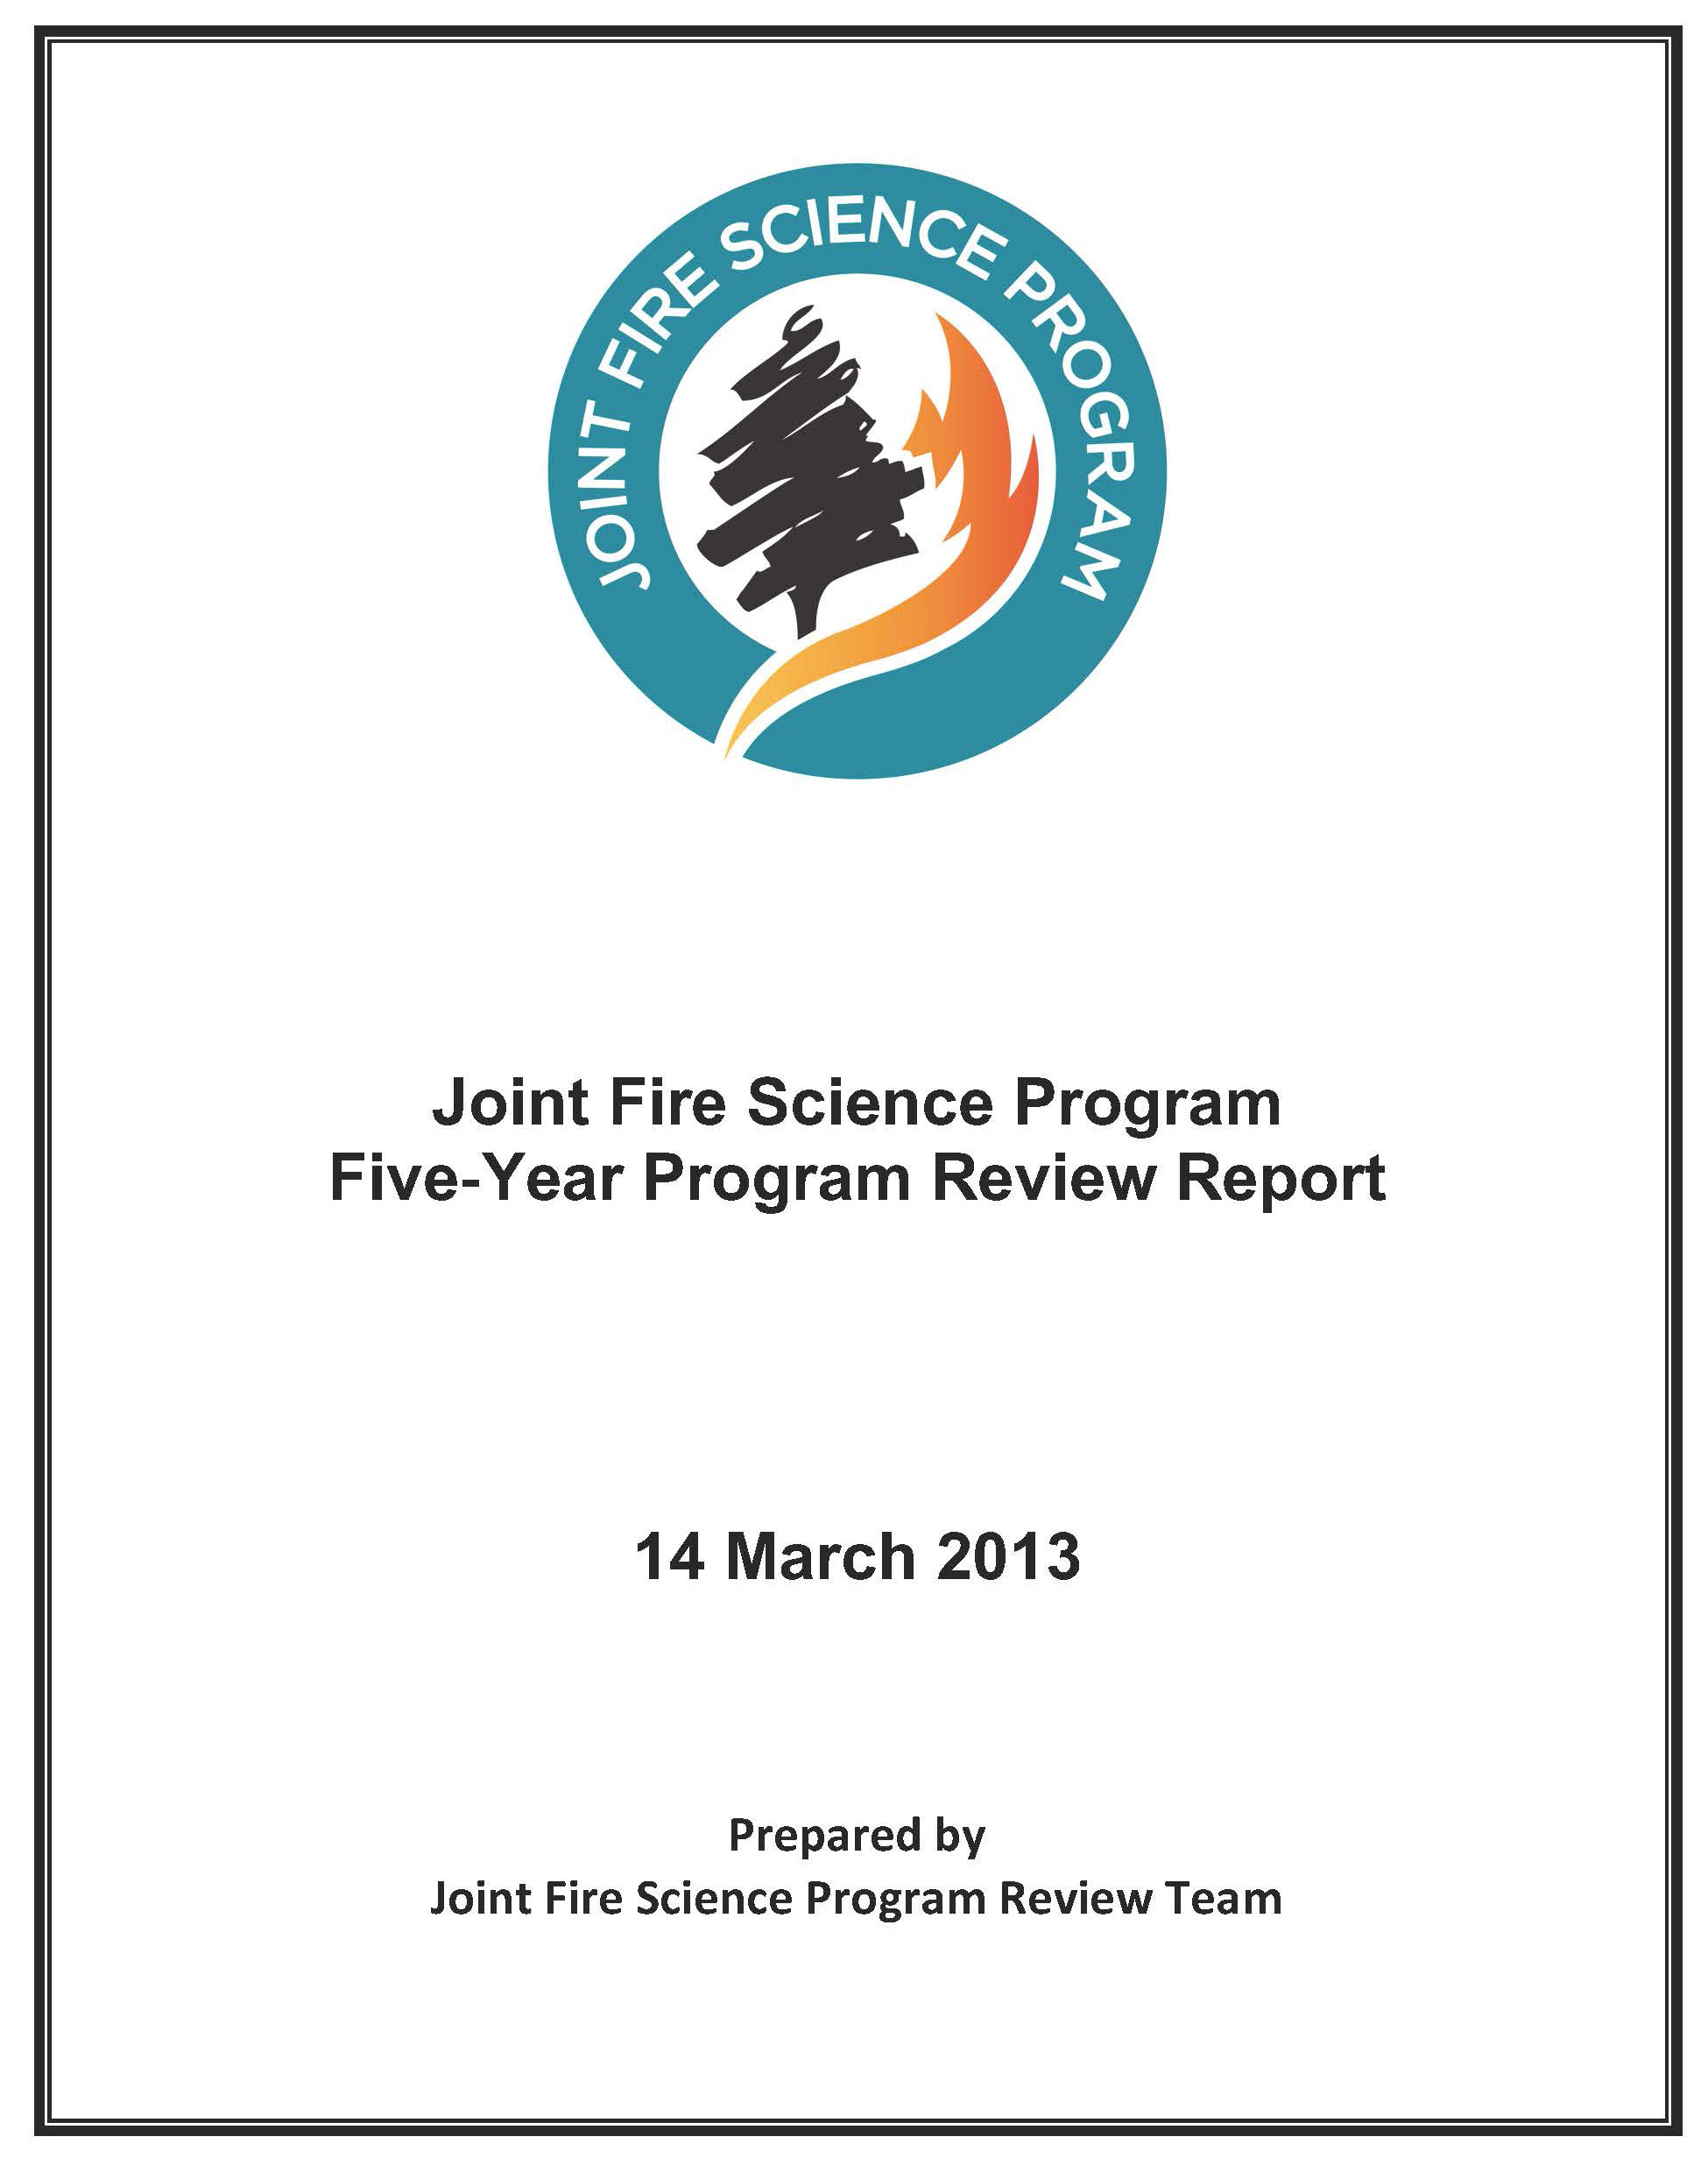 Image of the JFSP Report Cover